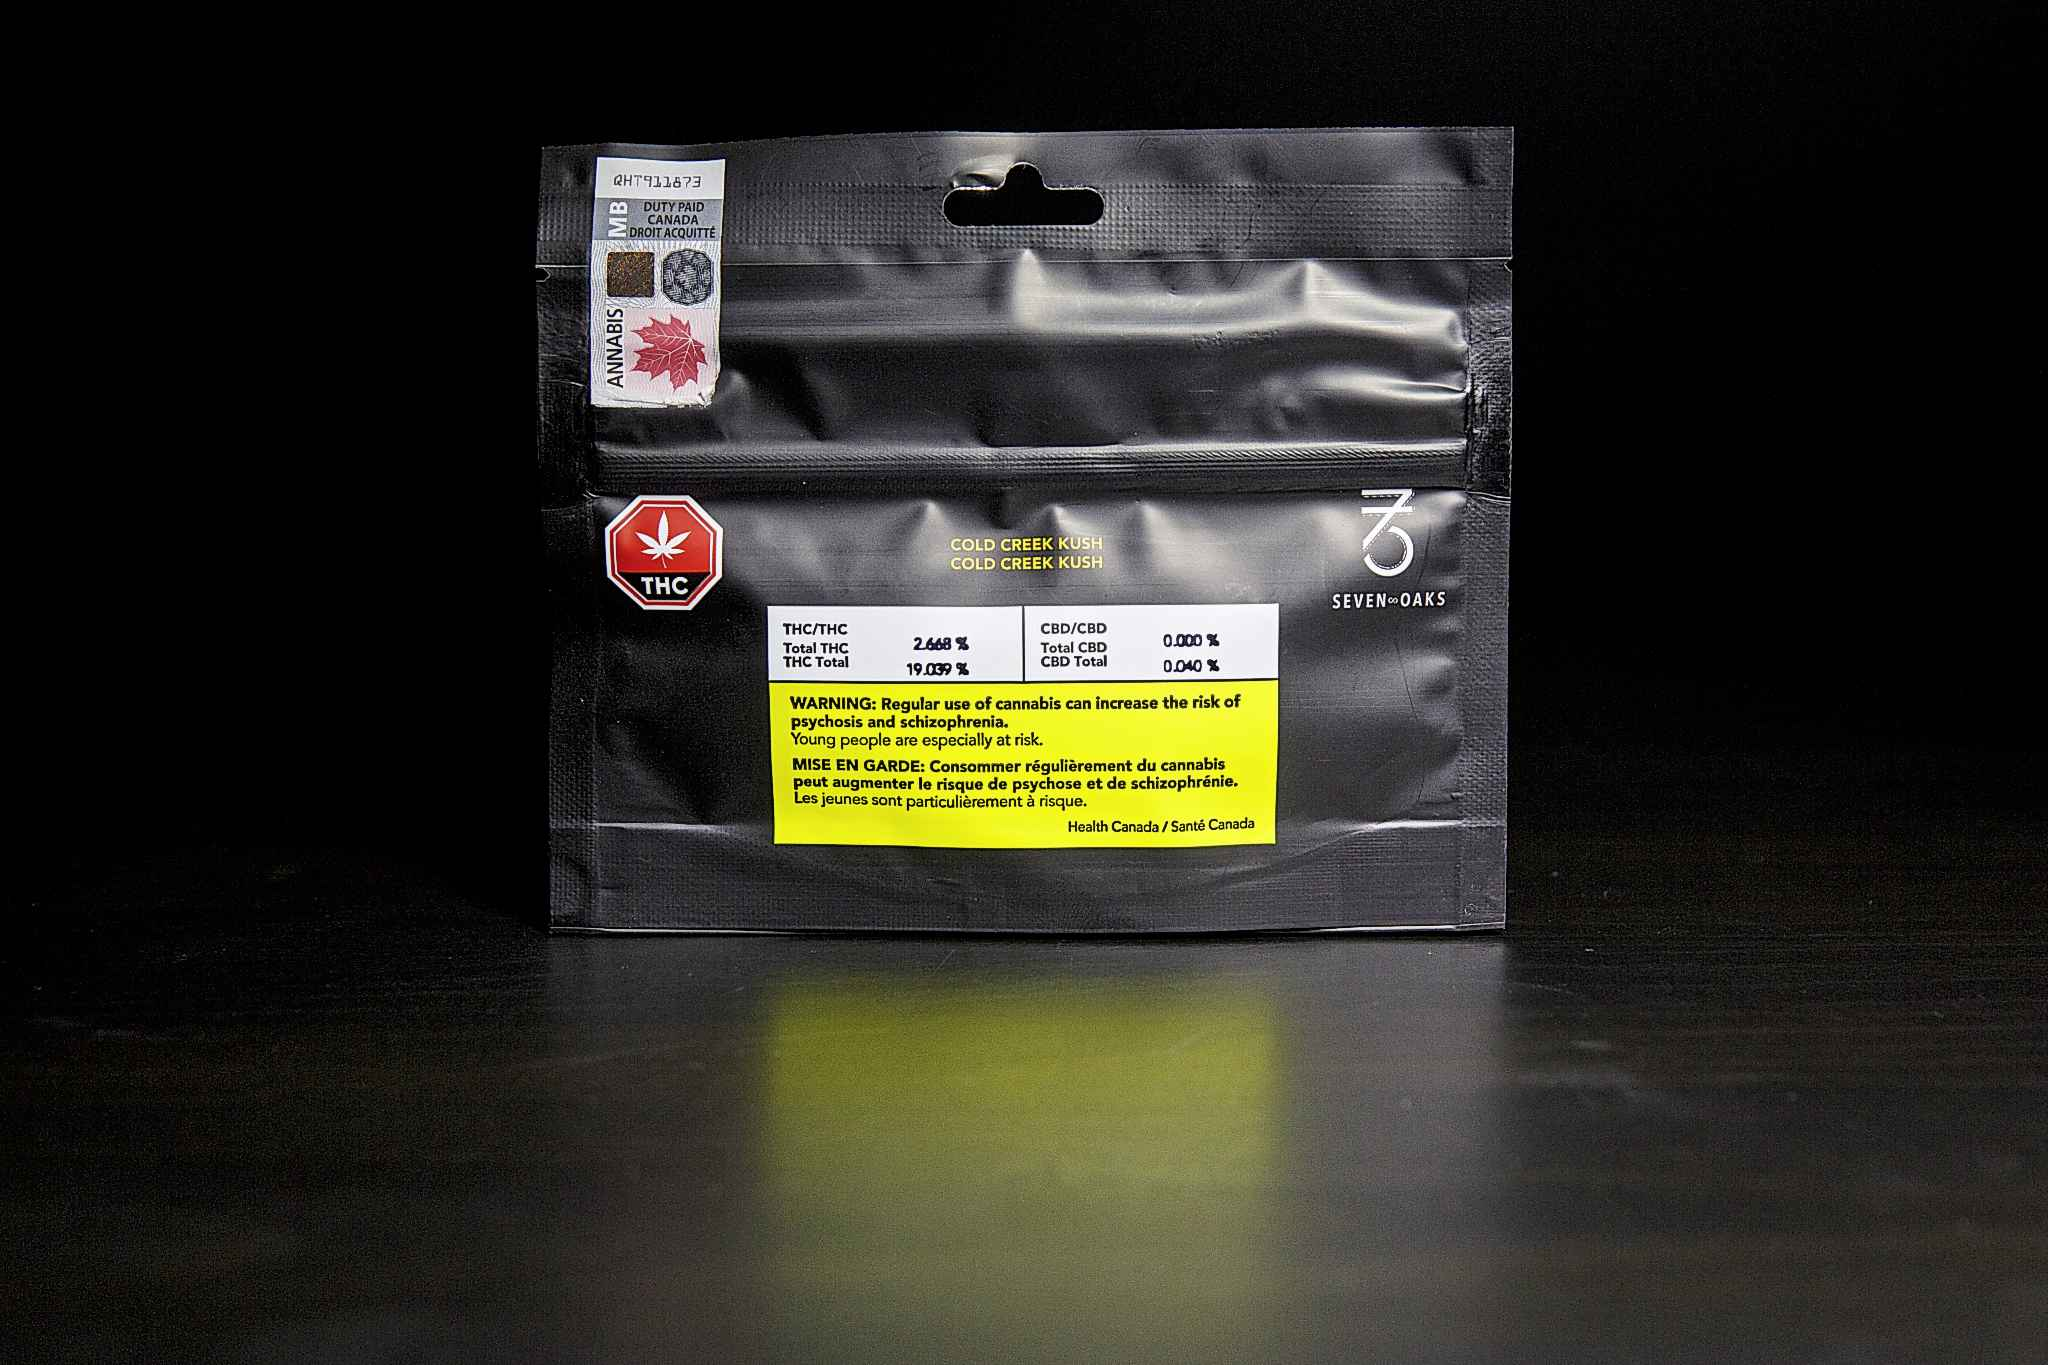 By law, legal cannabis packages in Canada must prominently display one of a variety of government-designed warning messages. (Mike Deal/Winnipeg Free Press)